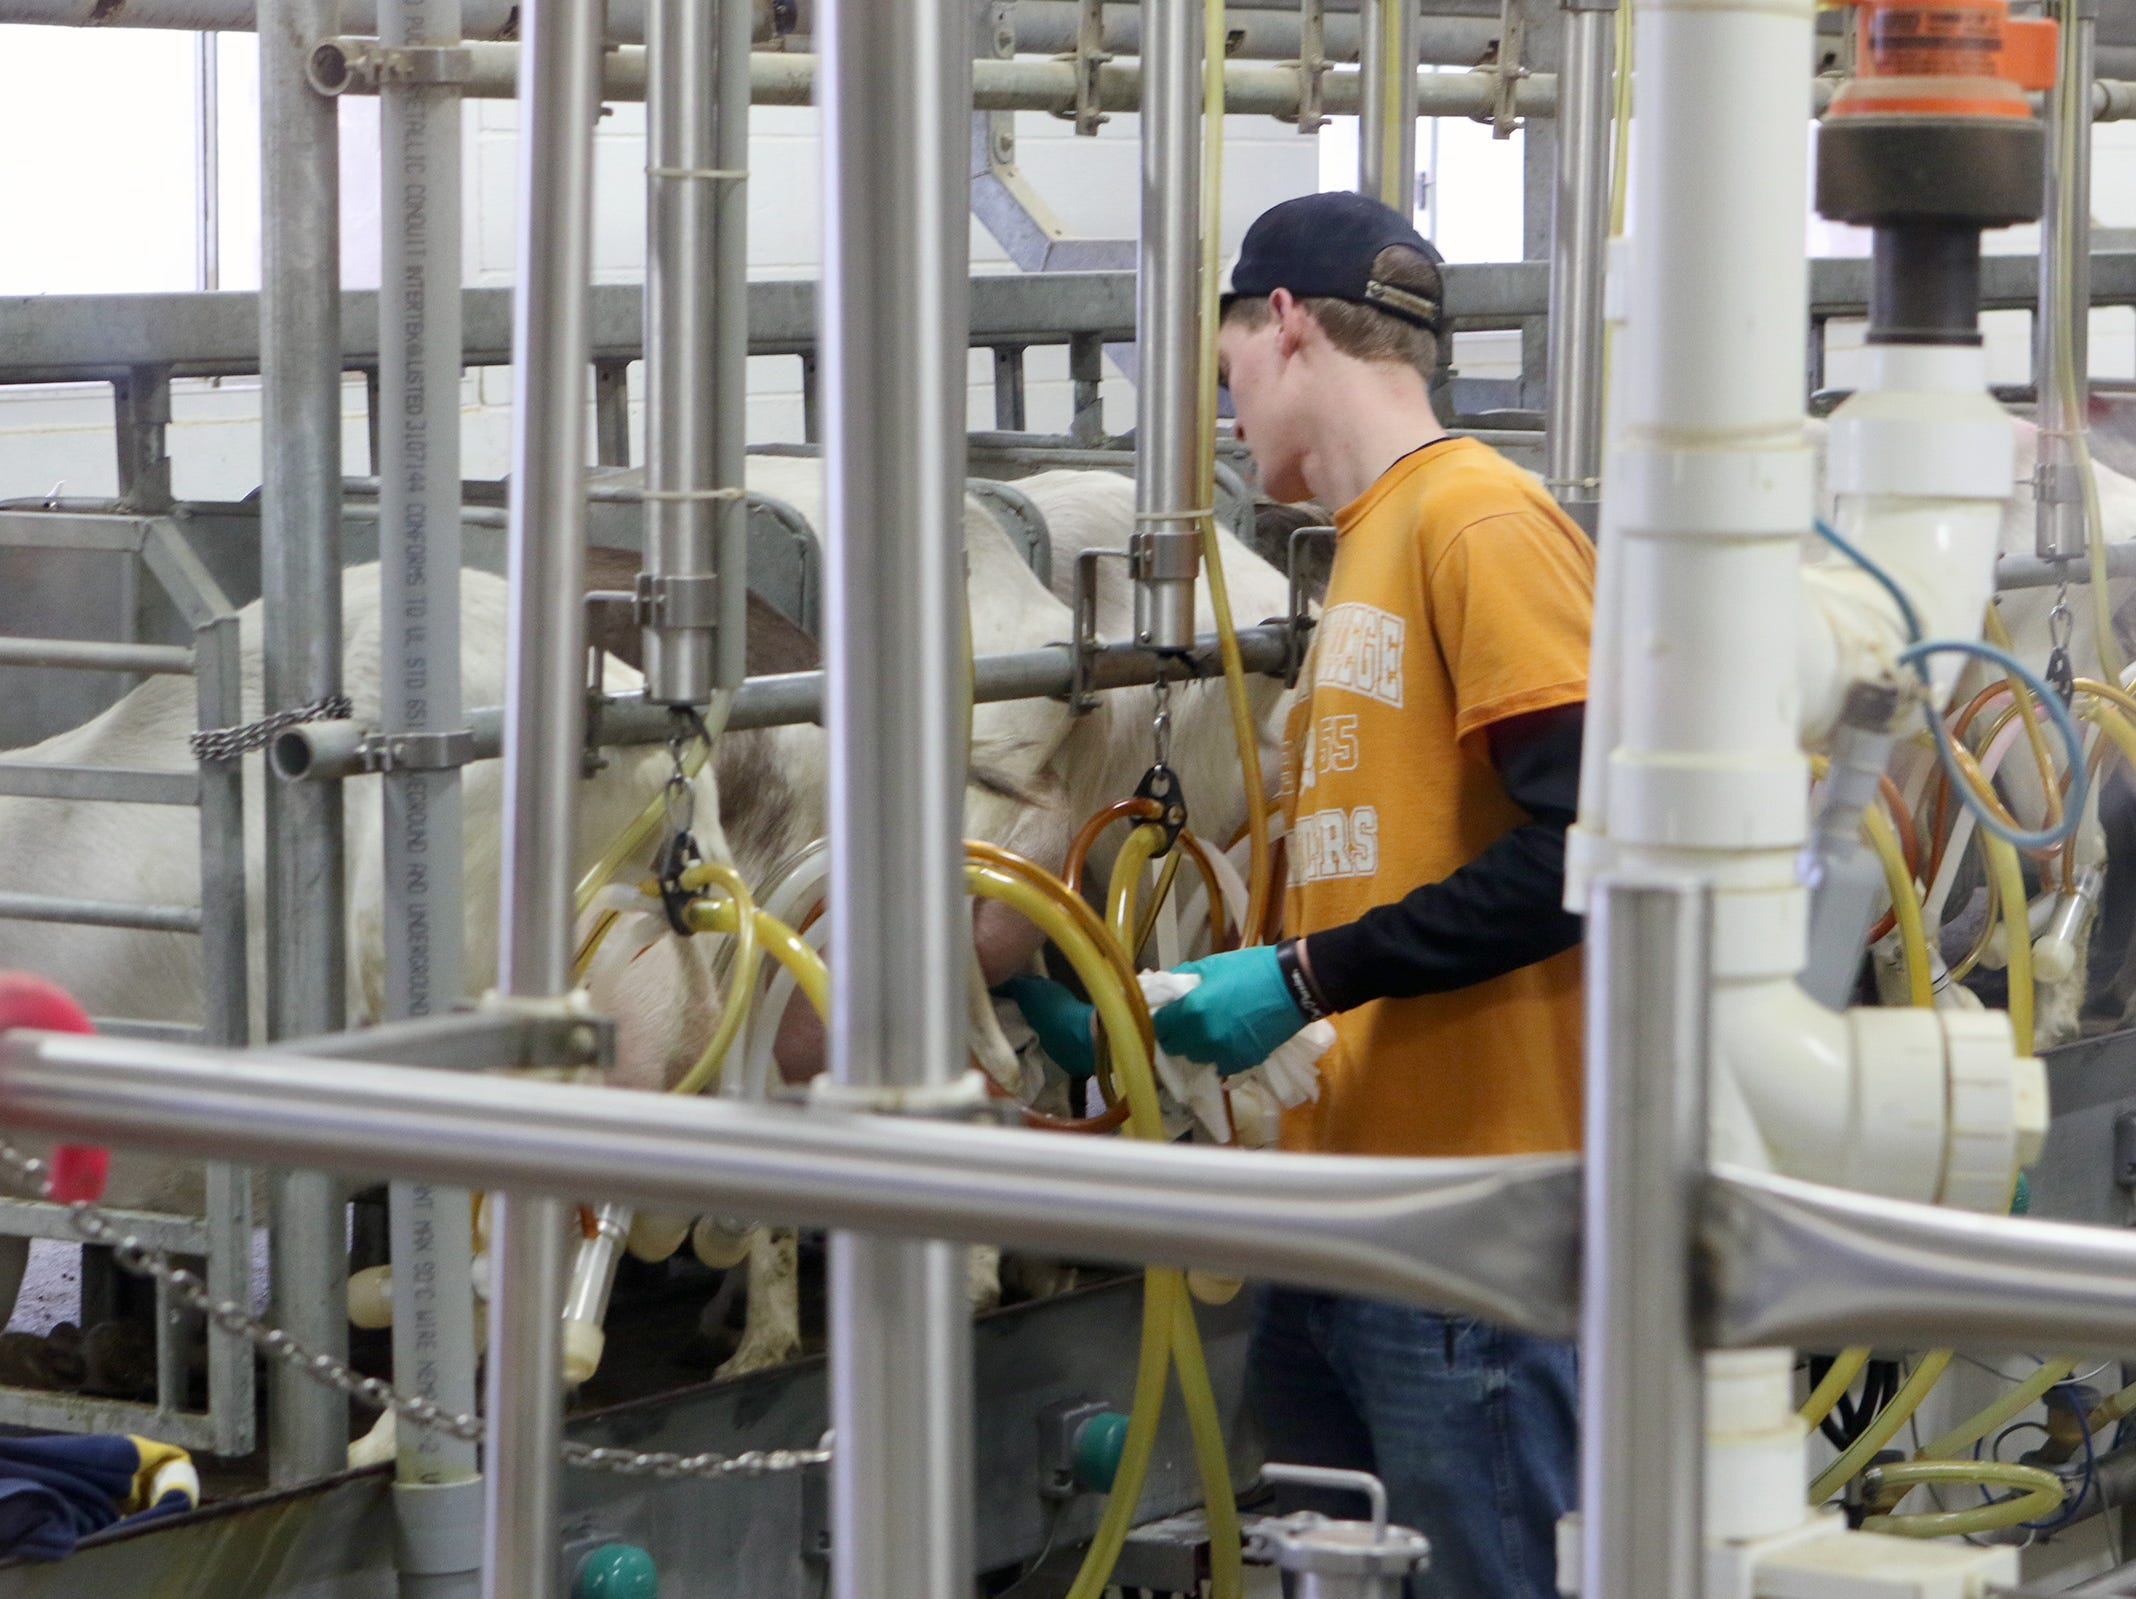 LaClare Family Creamery: From two goats to award-winning cheese